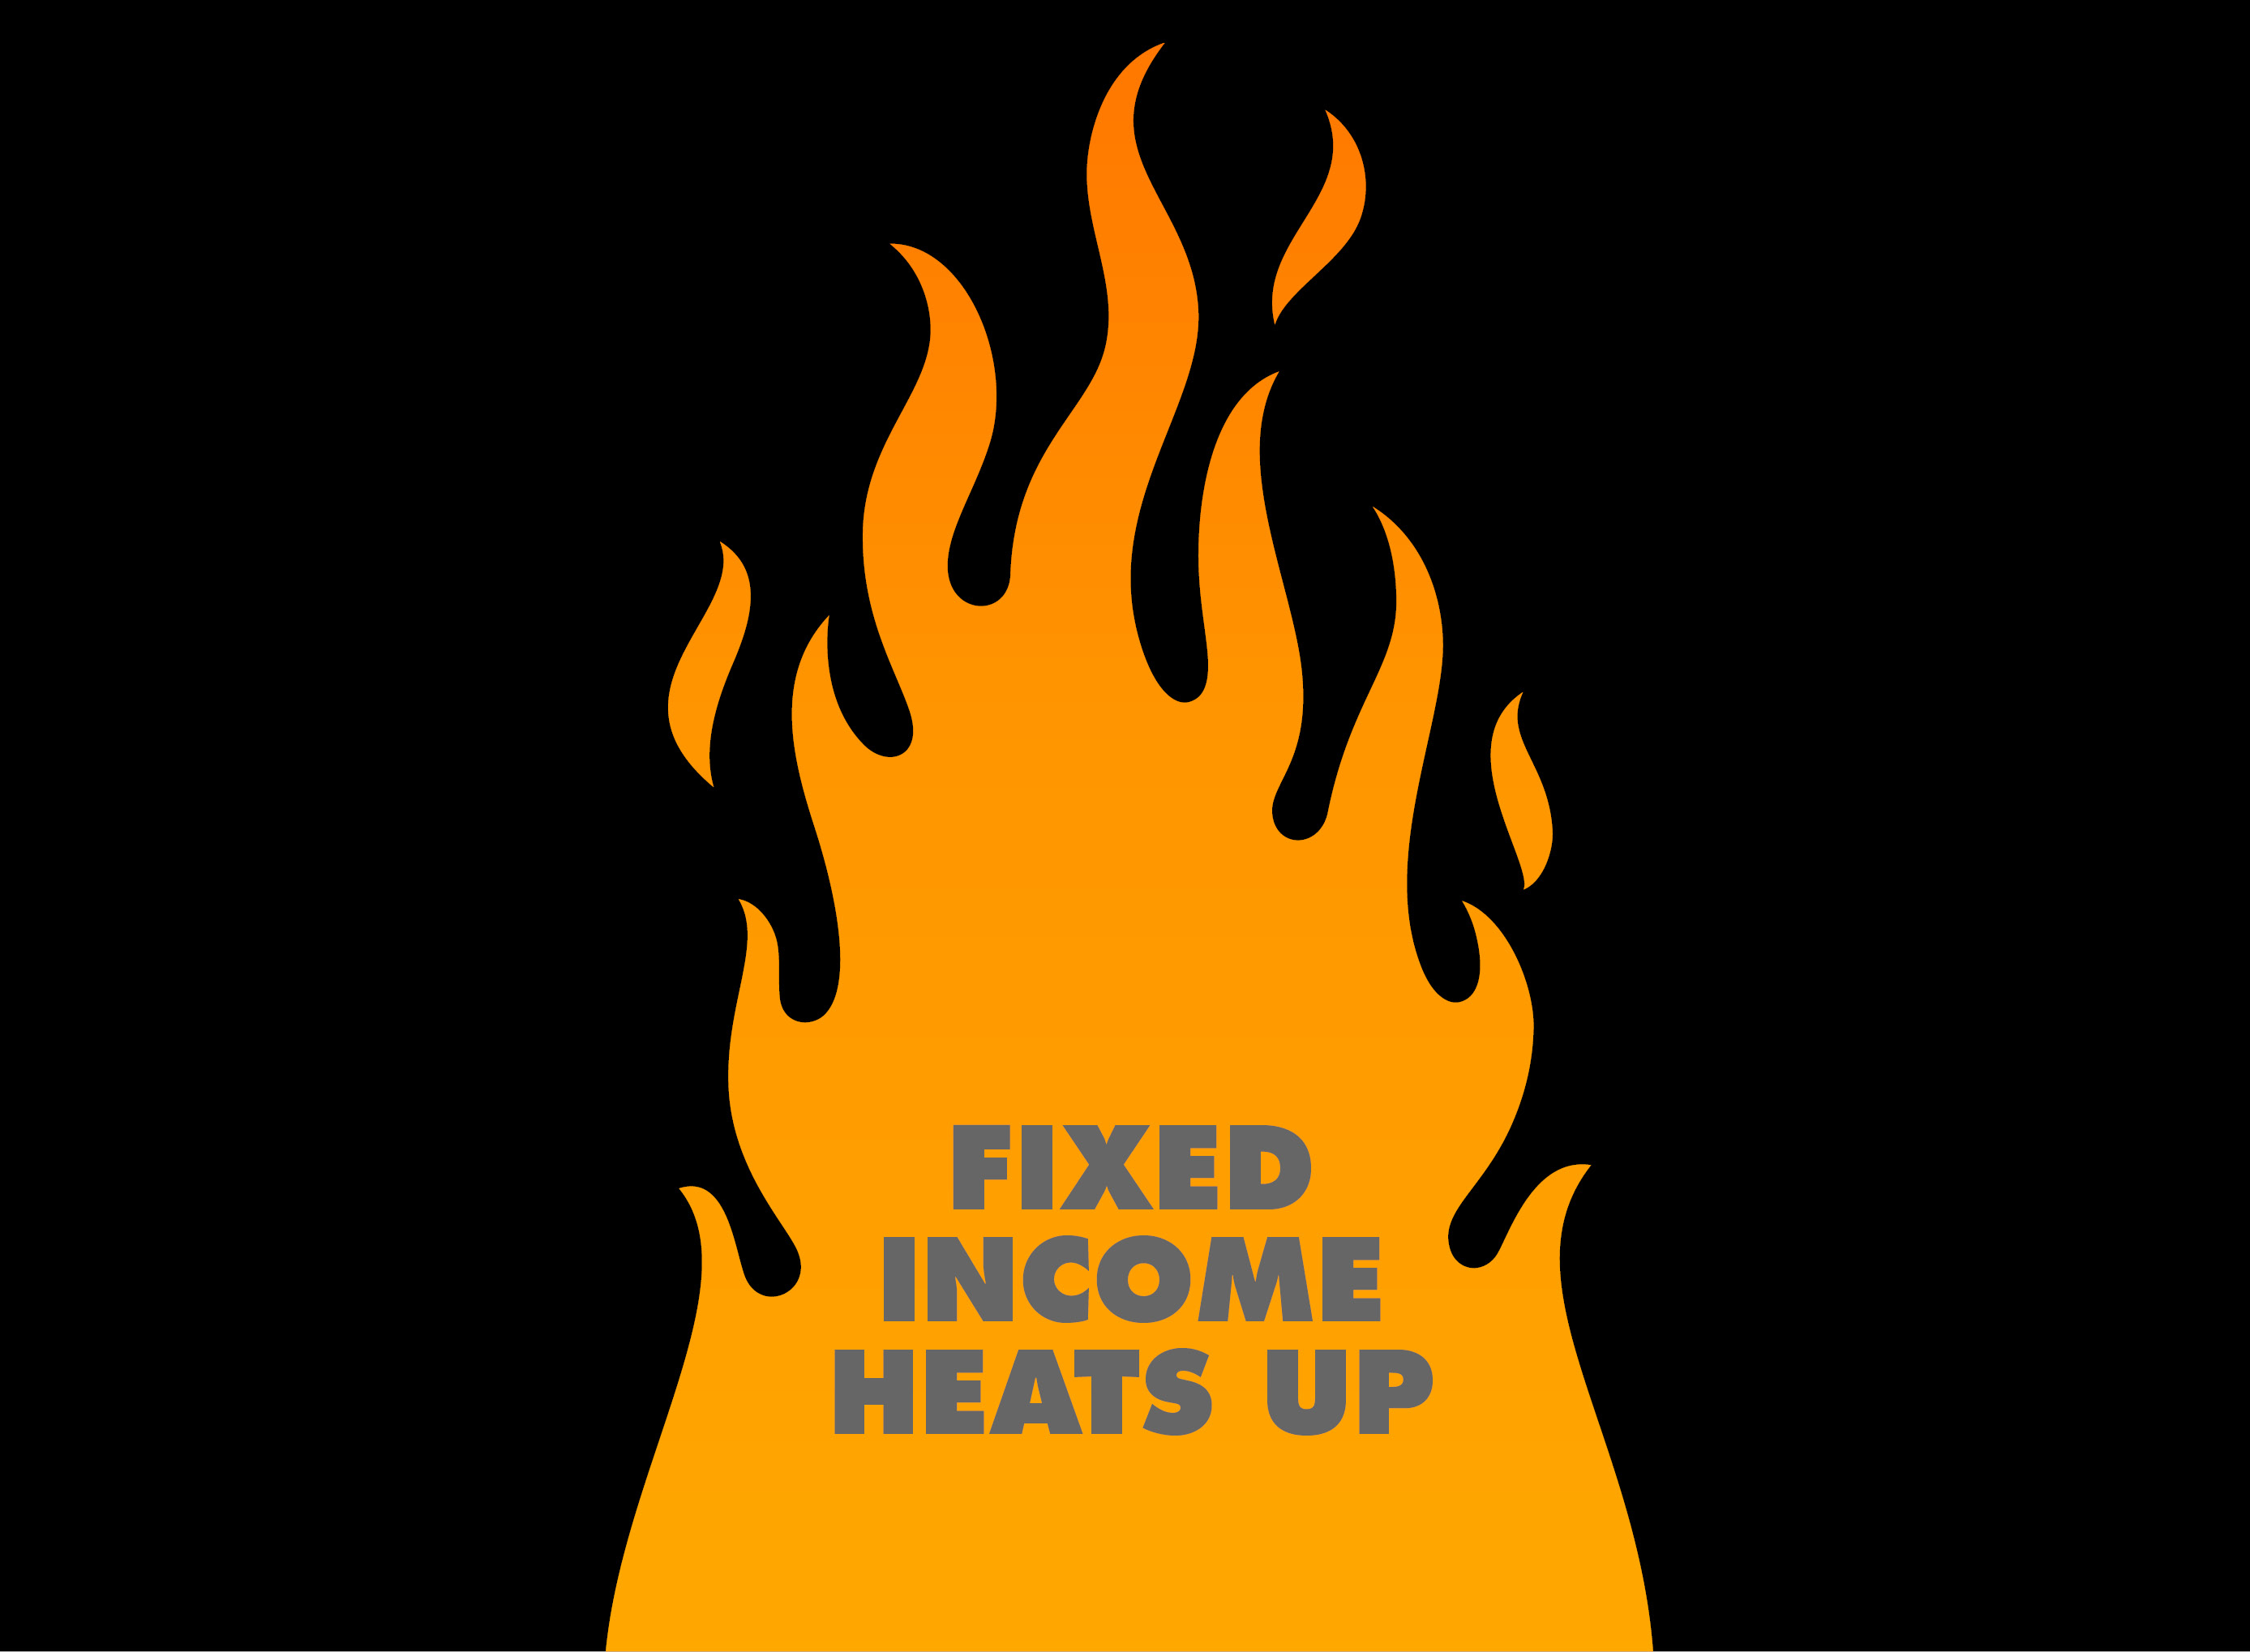 In the fragmented world of Fixed Income, the buy-build debate heats up